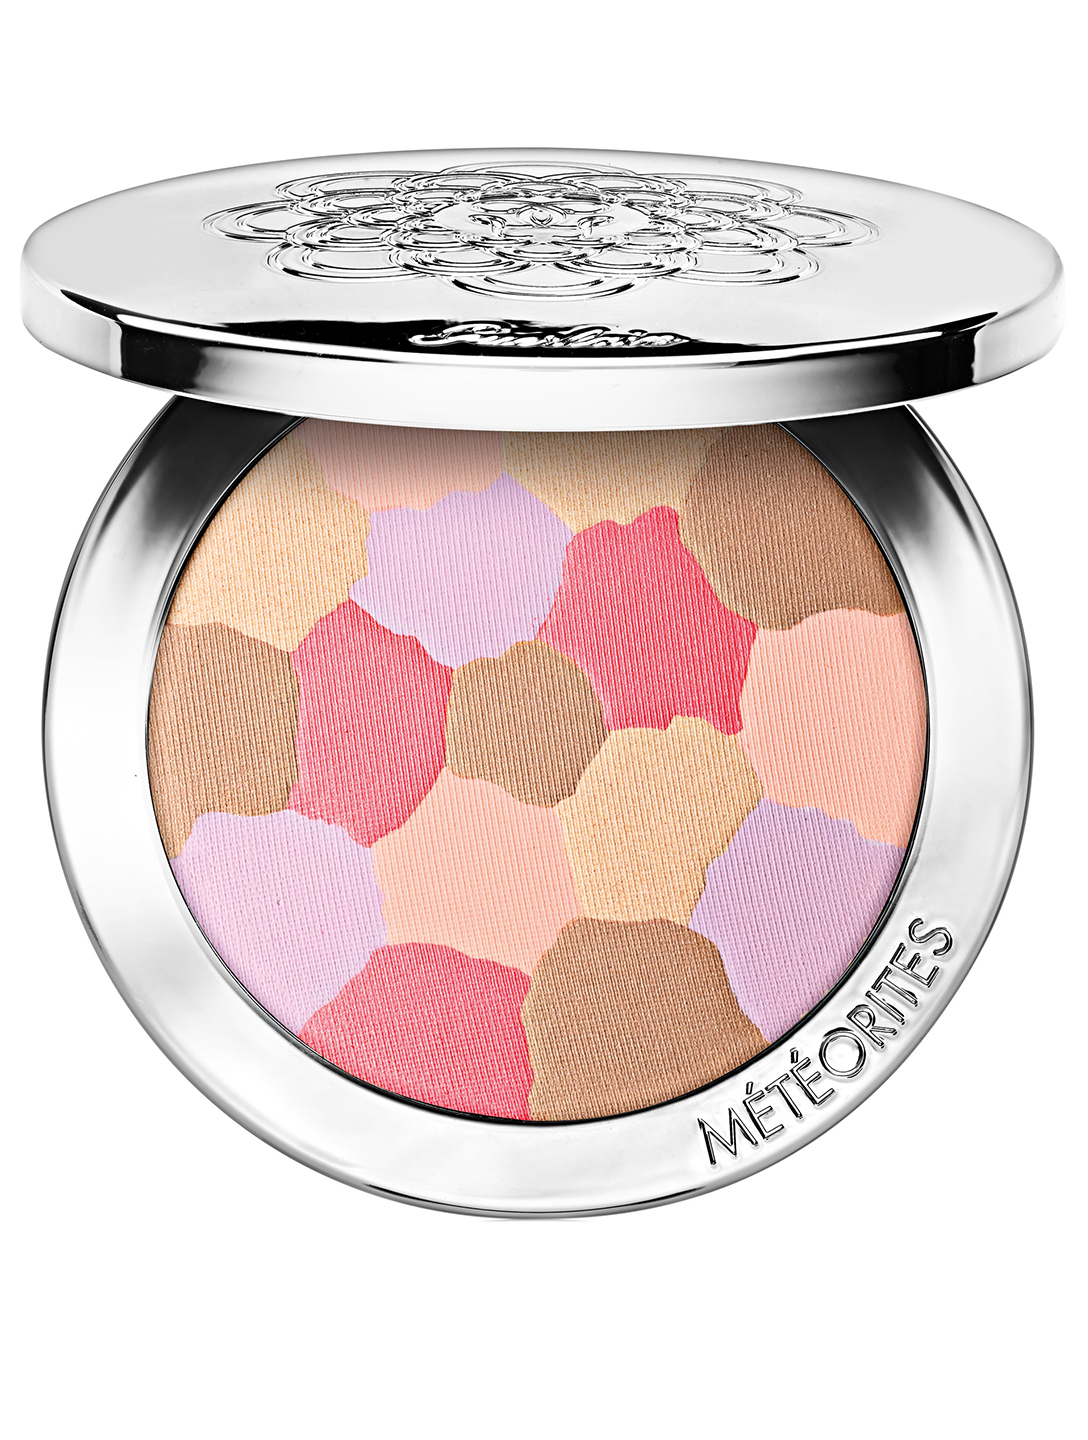 GUERLAIN Météorites Compact Beauty Neutral